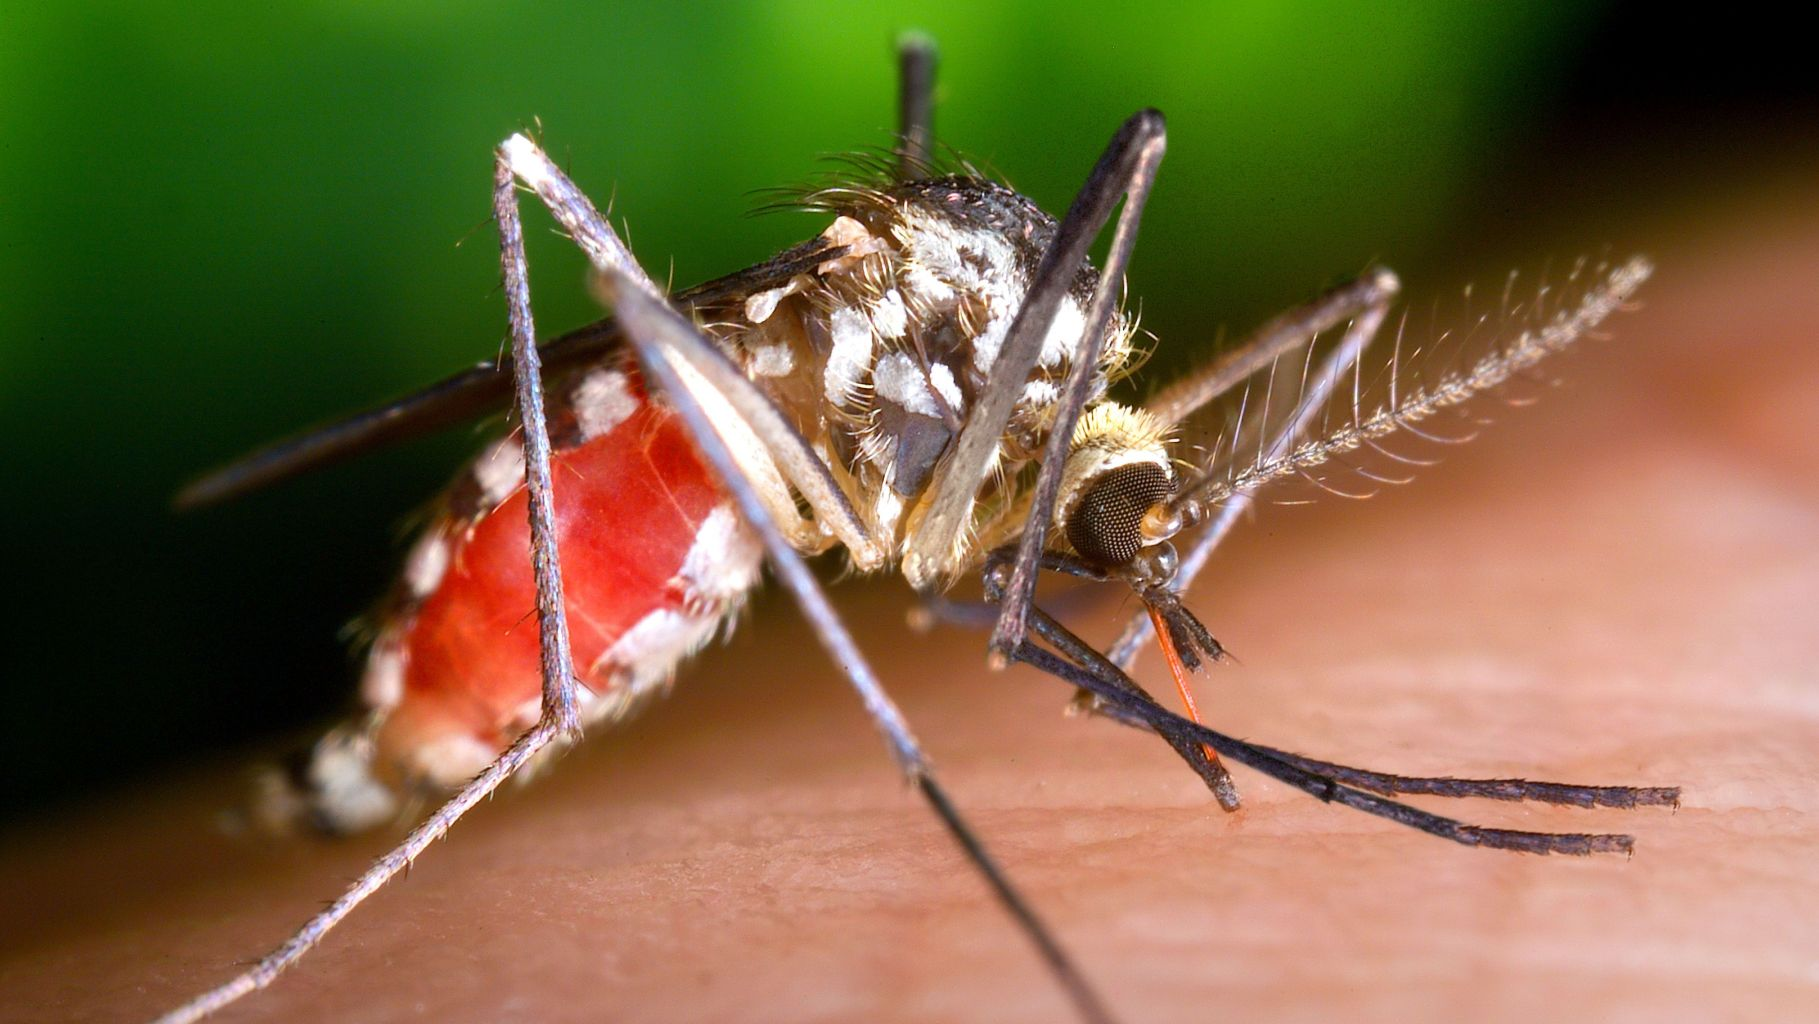 Image: Mosquito engorged with blood from feeding